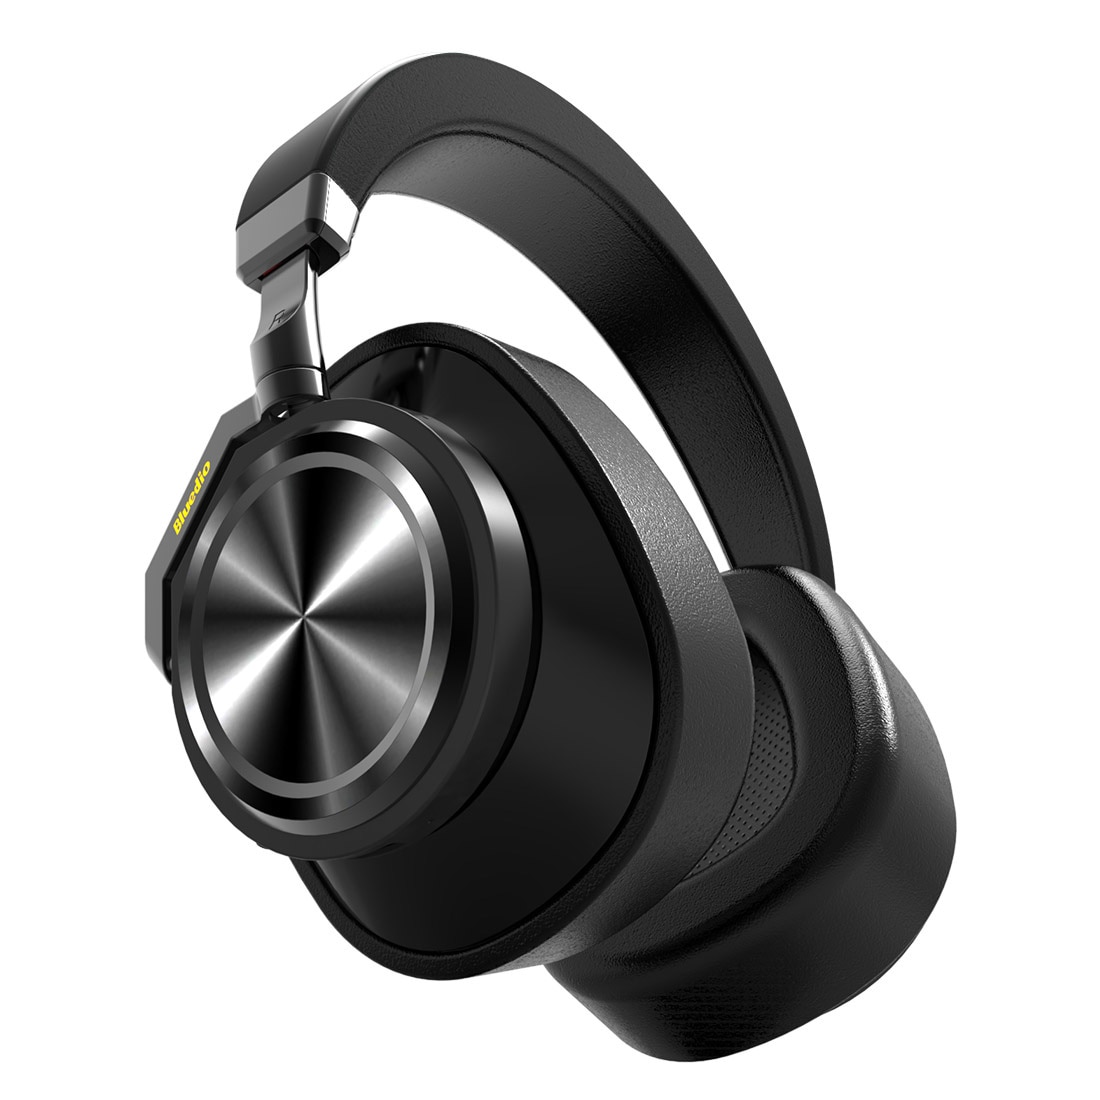 Bluedio T6 ANC bluetooth headphone T7 simplified version headset with powerful bass sound mic and noise reduction wired earphone